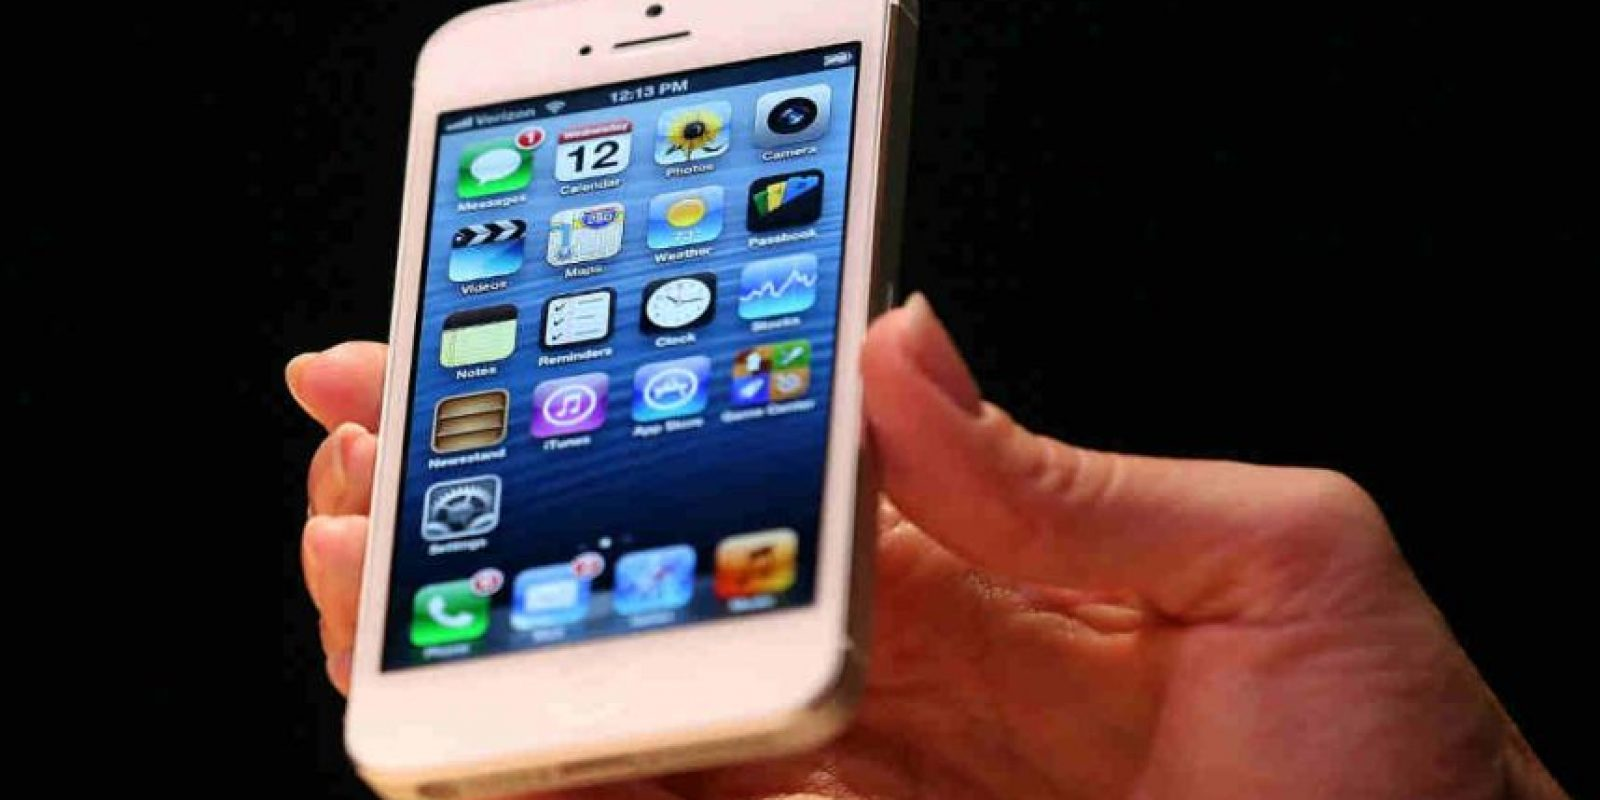 Y son prácticamente iguales a los iPhone originales. Foto: Getty Images